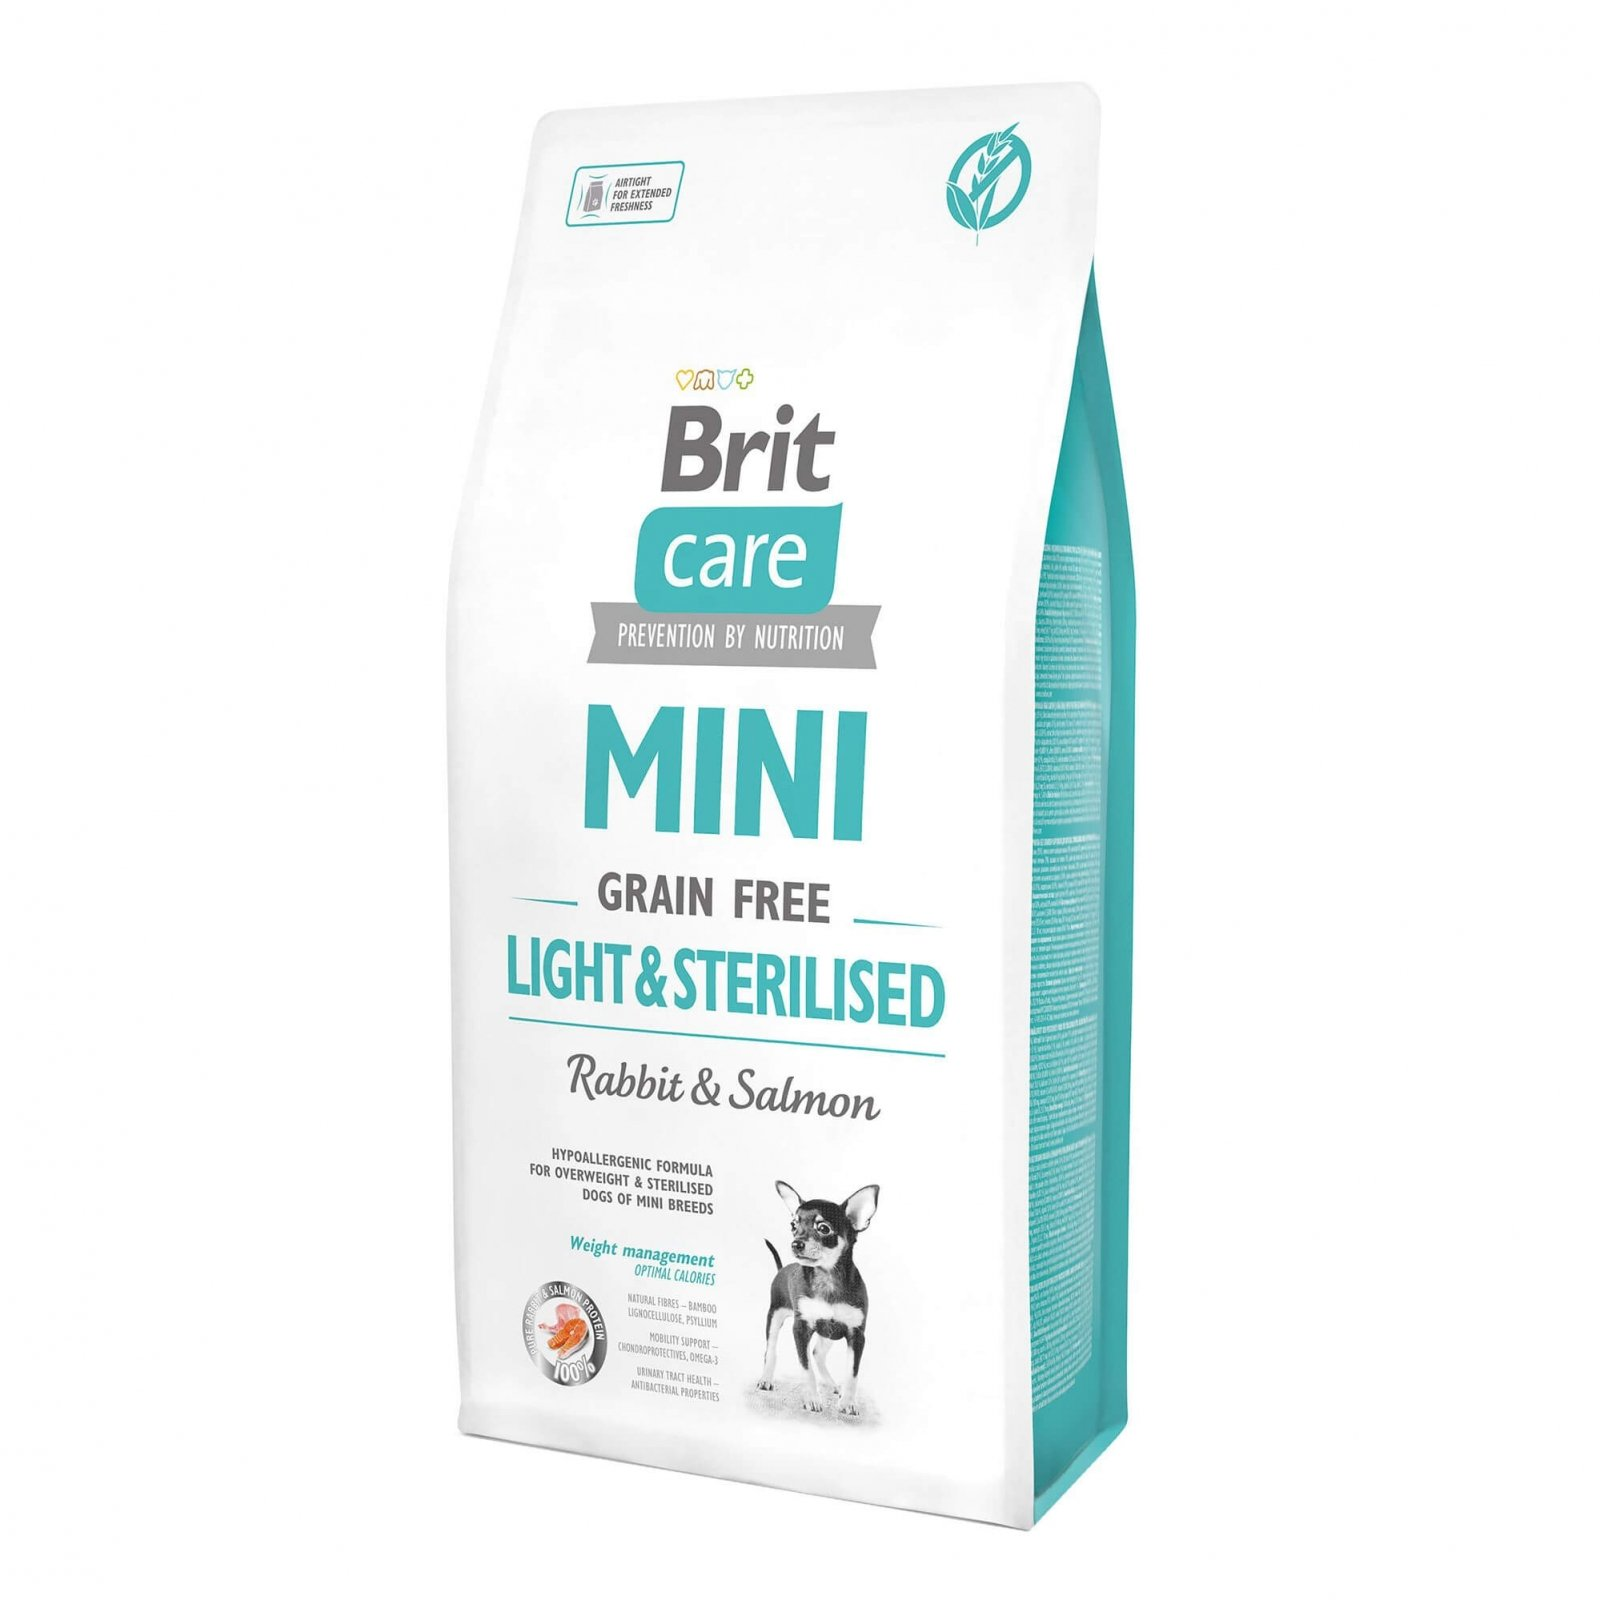 Brit Care Mini Grain Free Light & Sterilised, 7 Kg